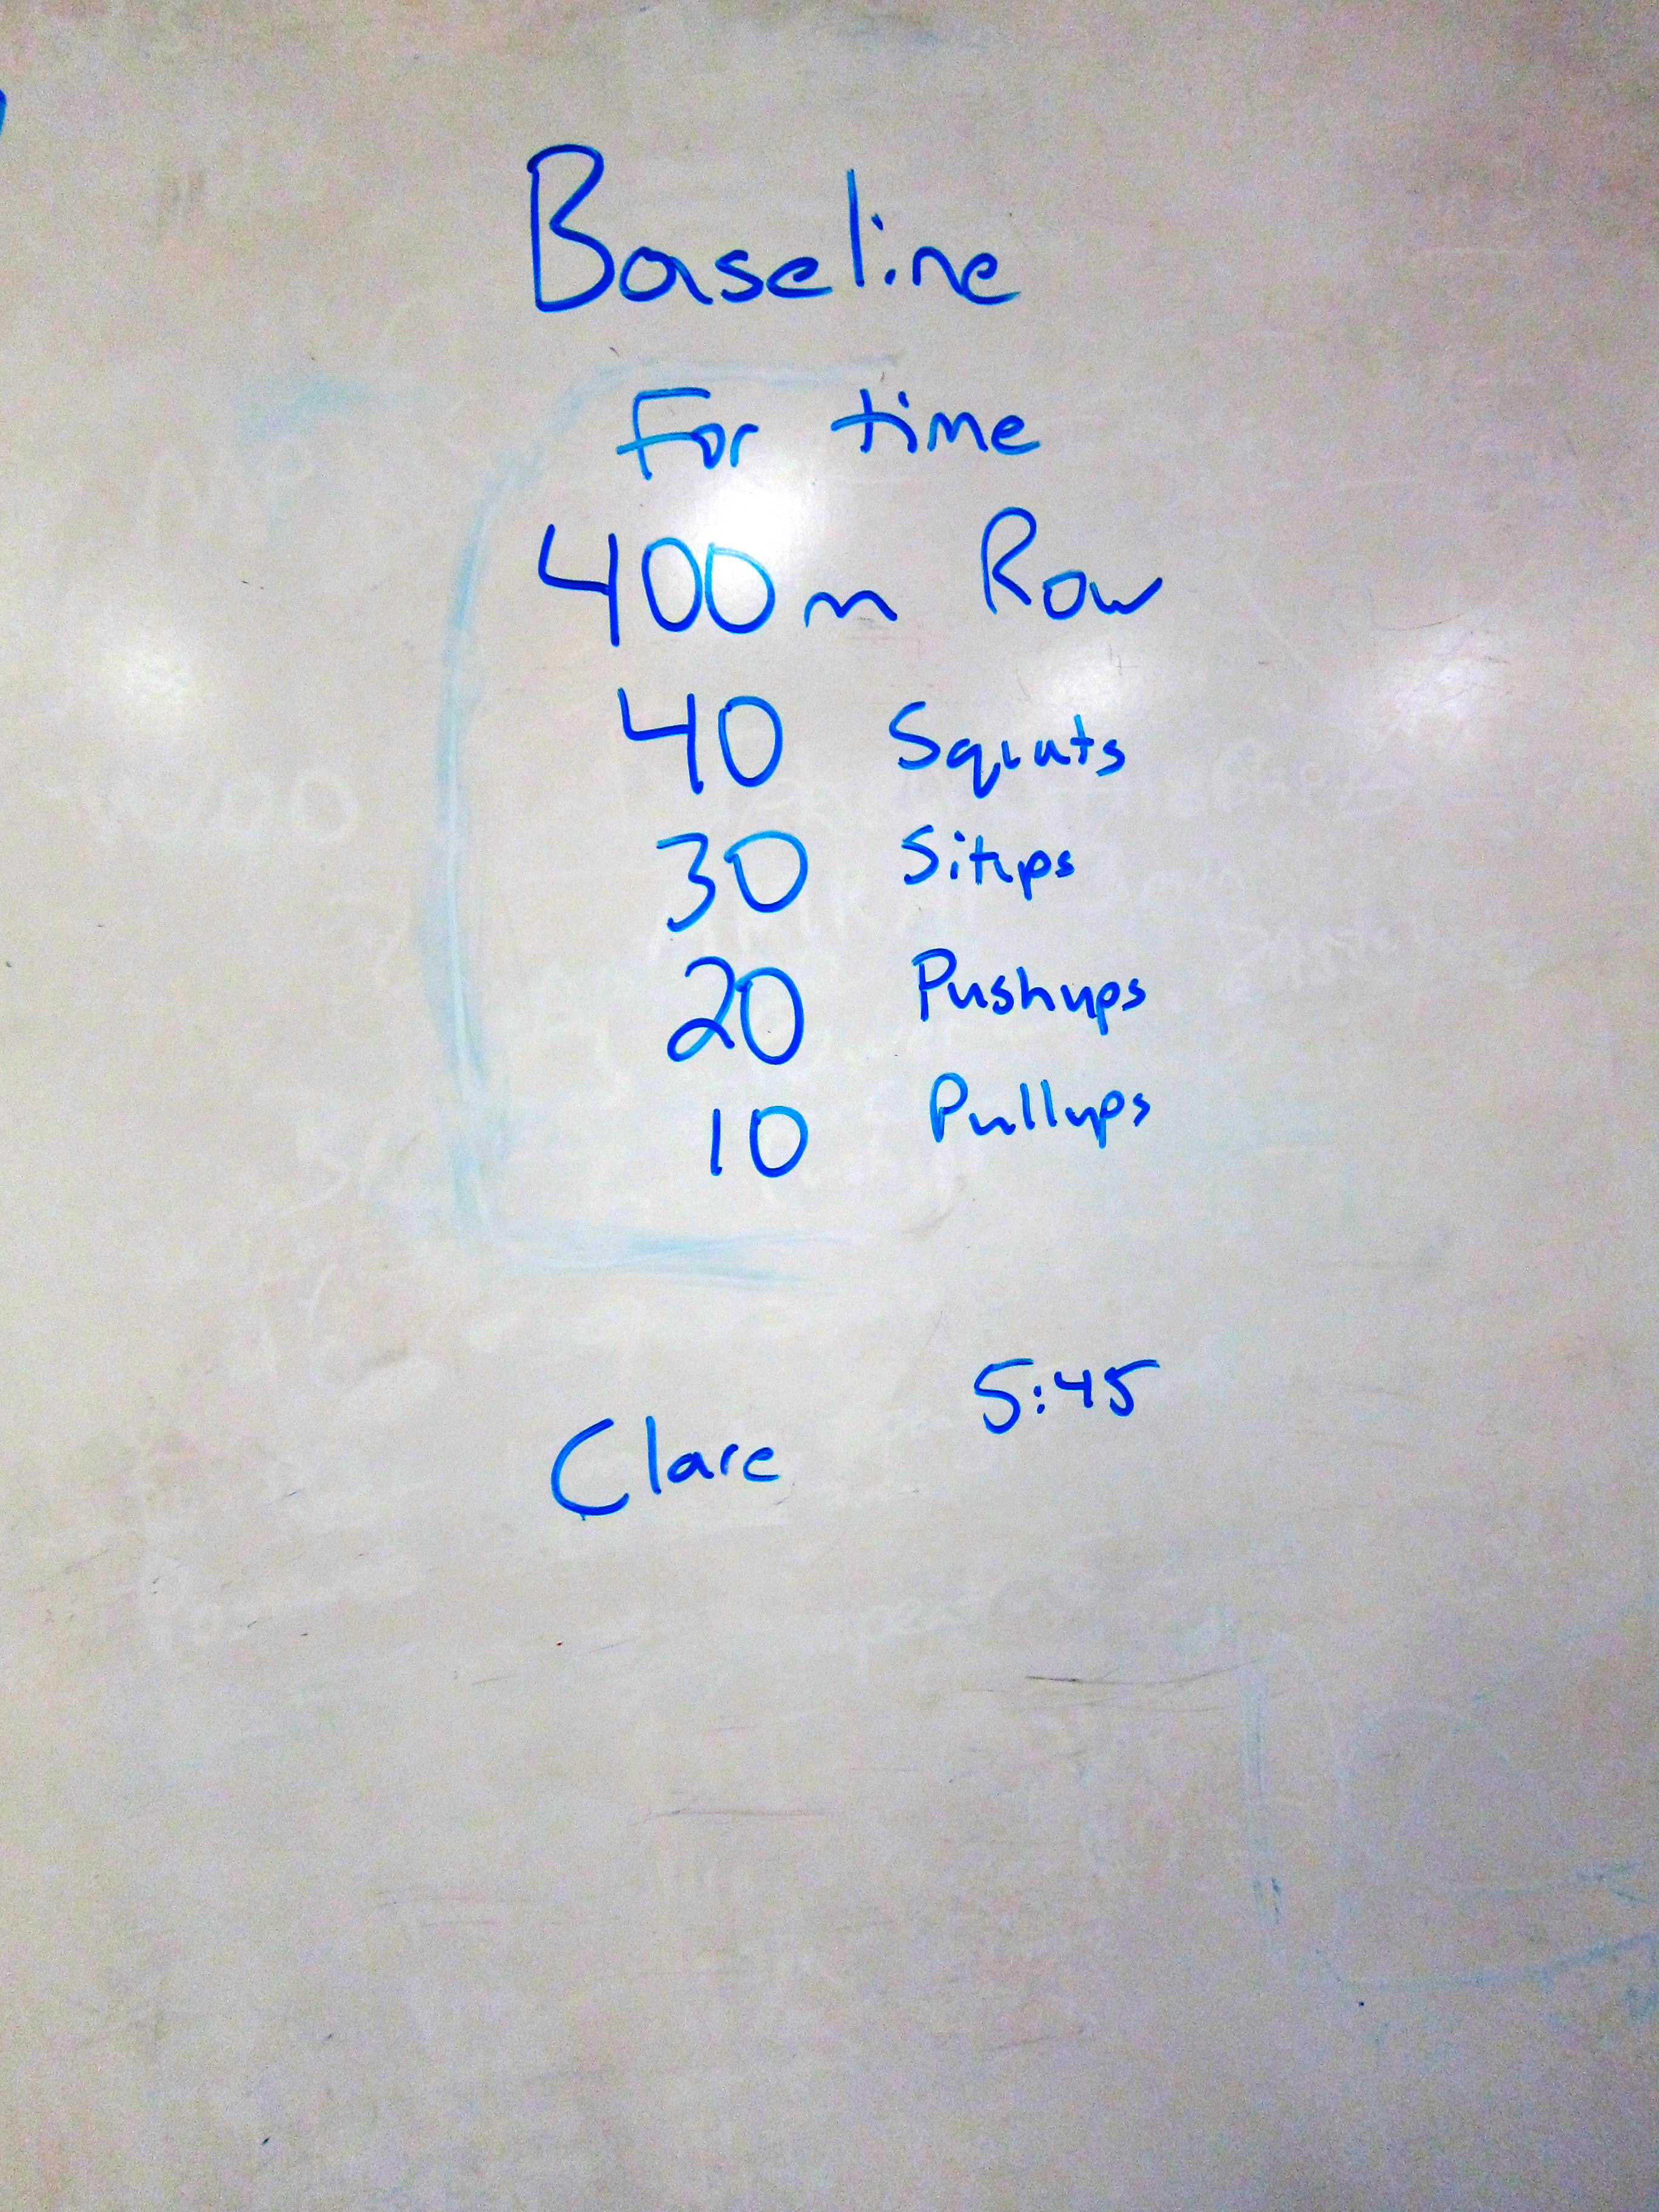 My First Crossfit Class Fitting It All In Training Workouts For Beginners Wod Baseline